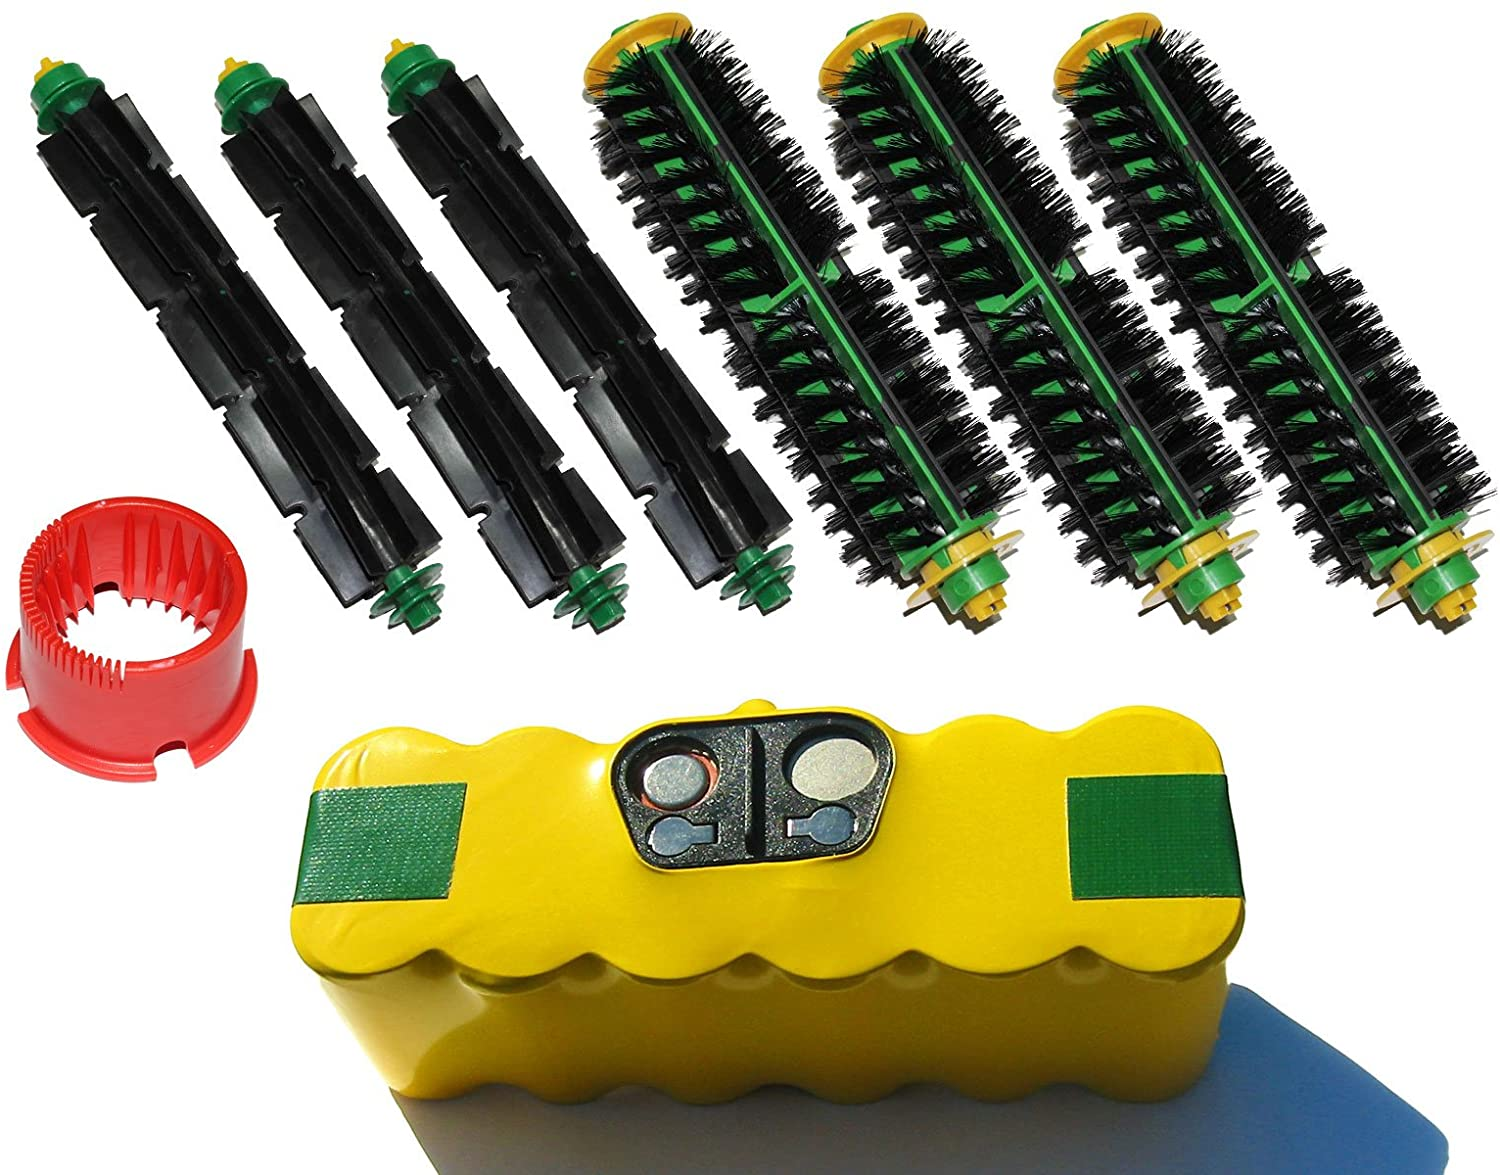 Replacement for iRobot Roomba 551 - Kit Includes 1 High Capacity Battery, 3 Bristle Brushes and 3 Flexible Beater Brushes, 1 Brush Cleaning Tool